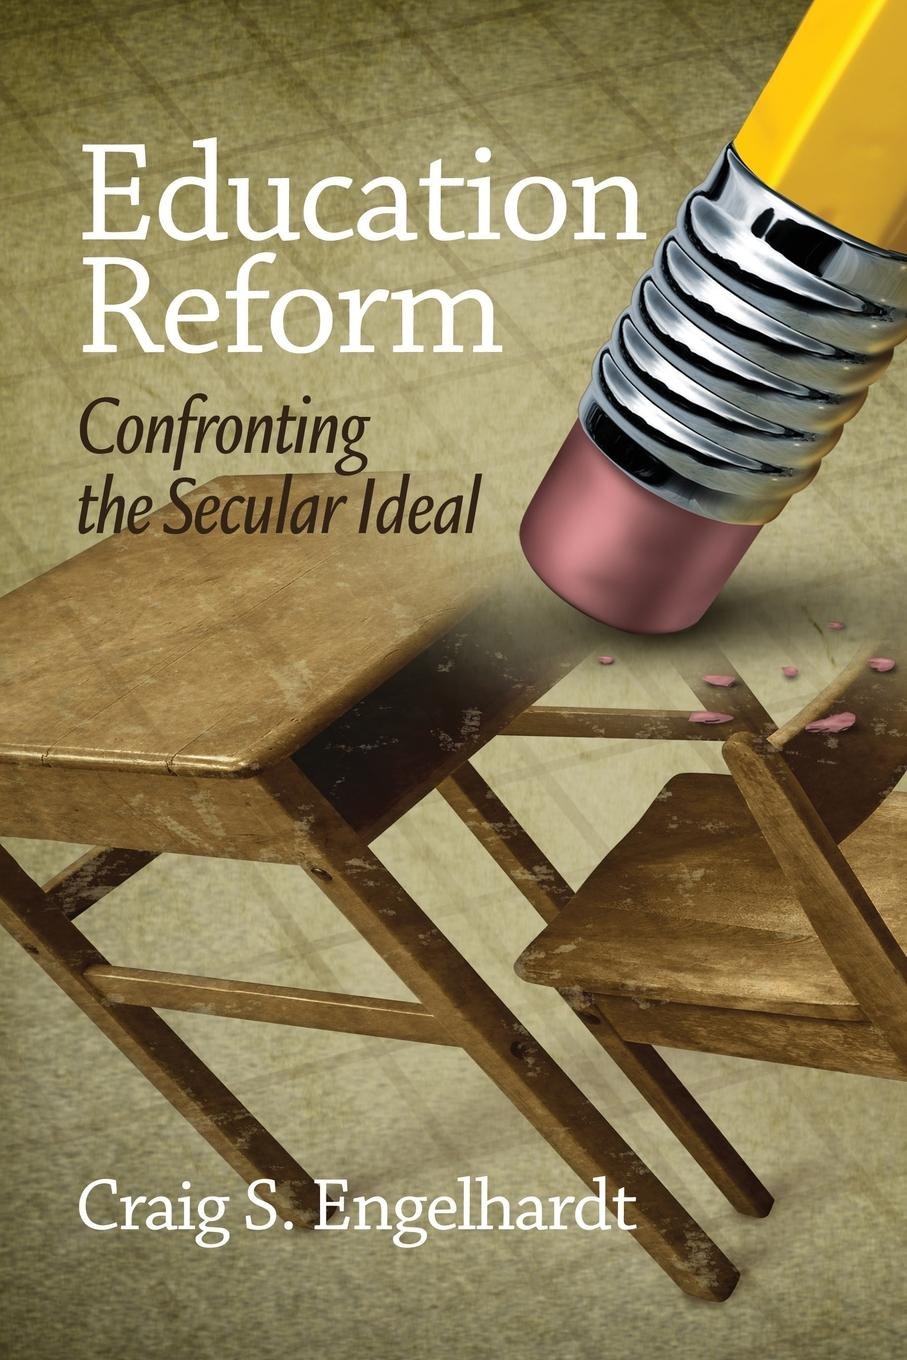 Craig S. Engelhardt Education Reform. Confronting the Secular Ideal mehmet ozan asik religious education in egypt a sociological analysis of contesting religious educational institutions policies and discourses